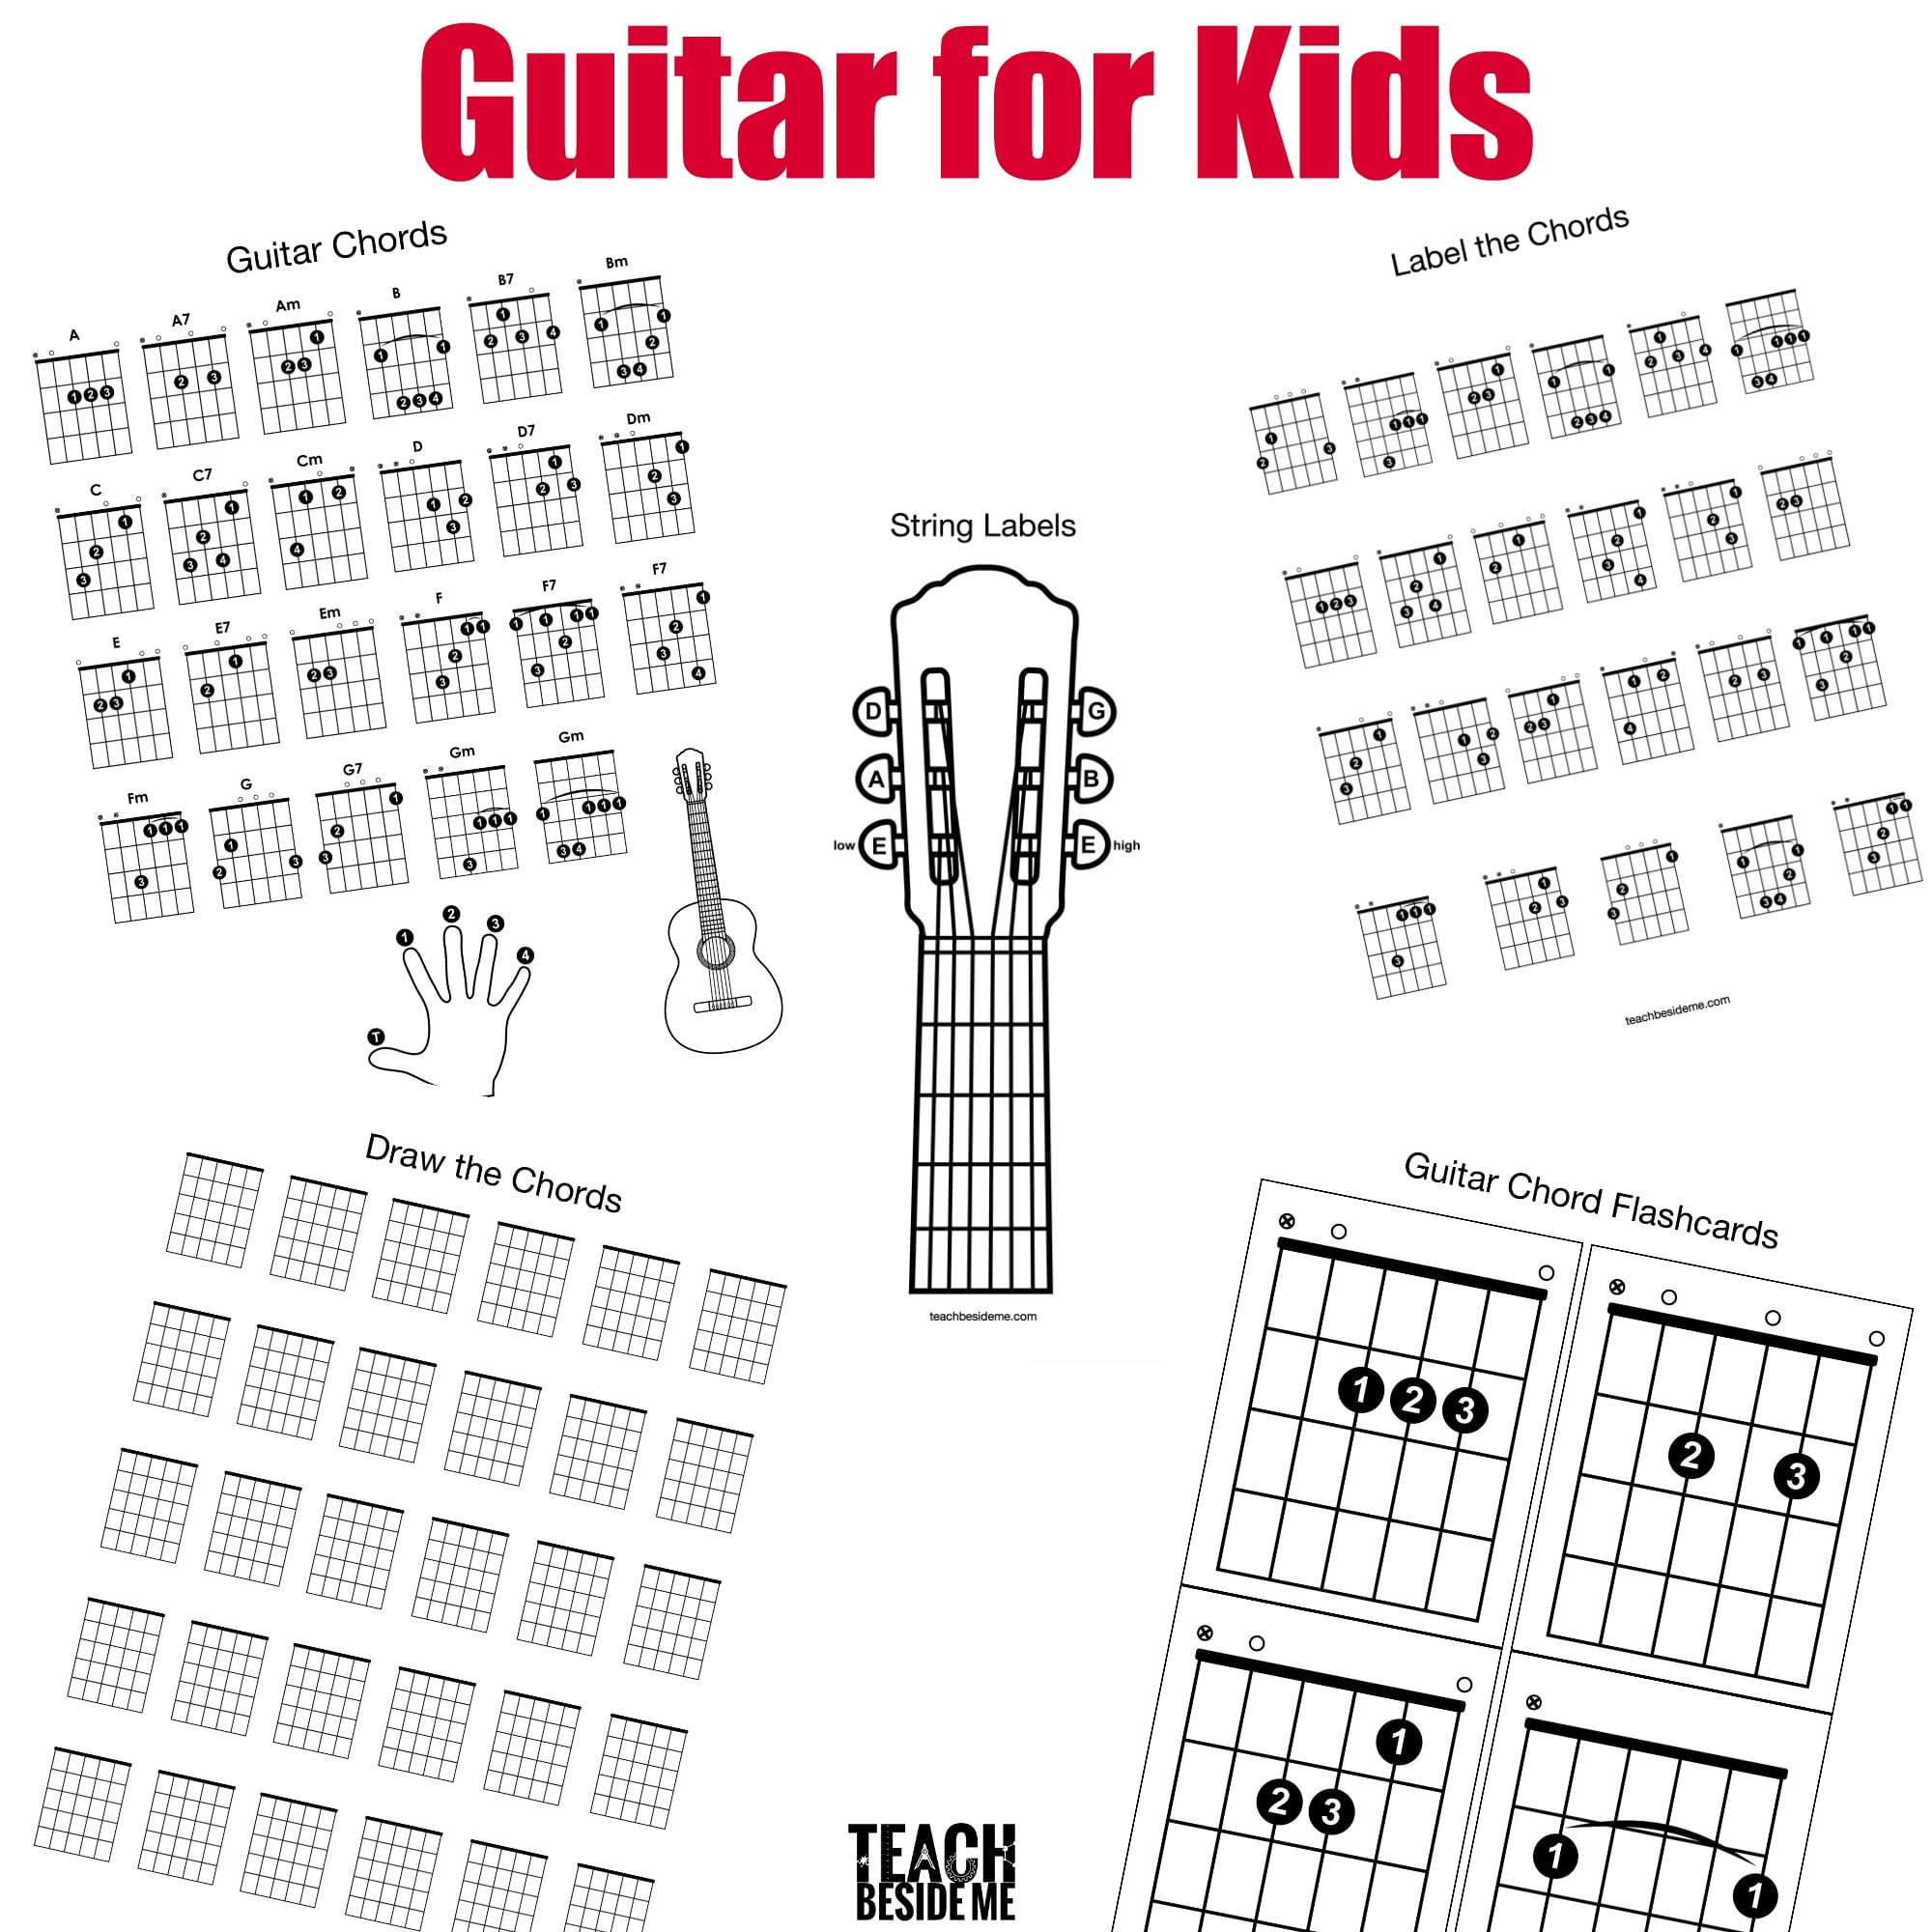 Guitar Chords For Kids Teach Beside Me